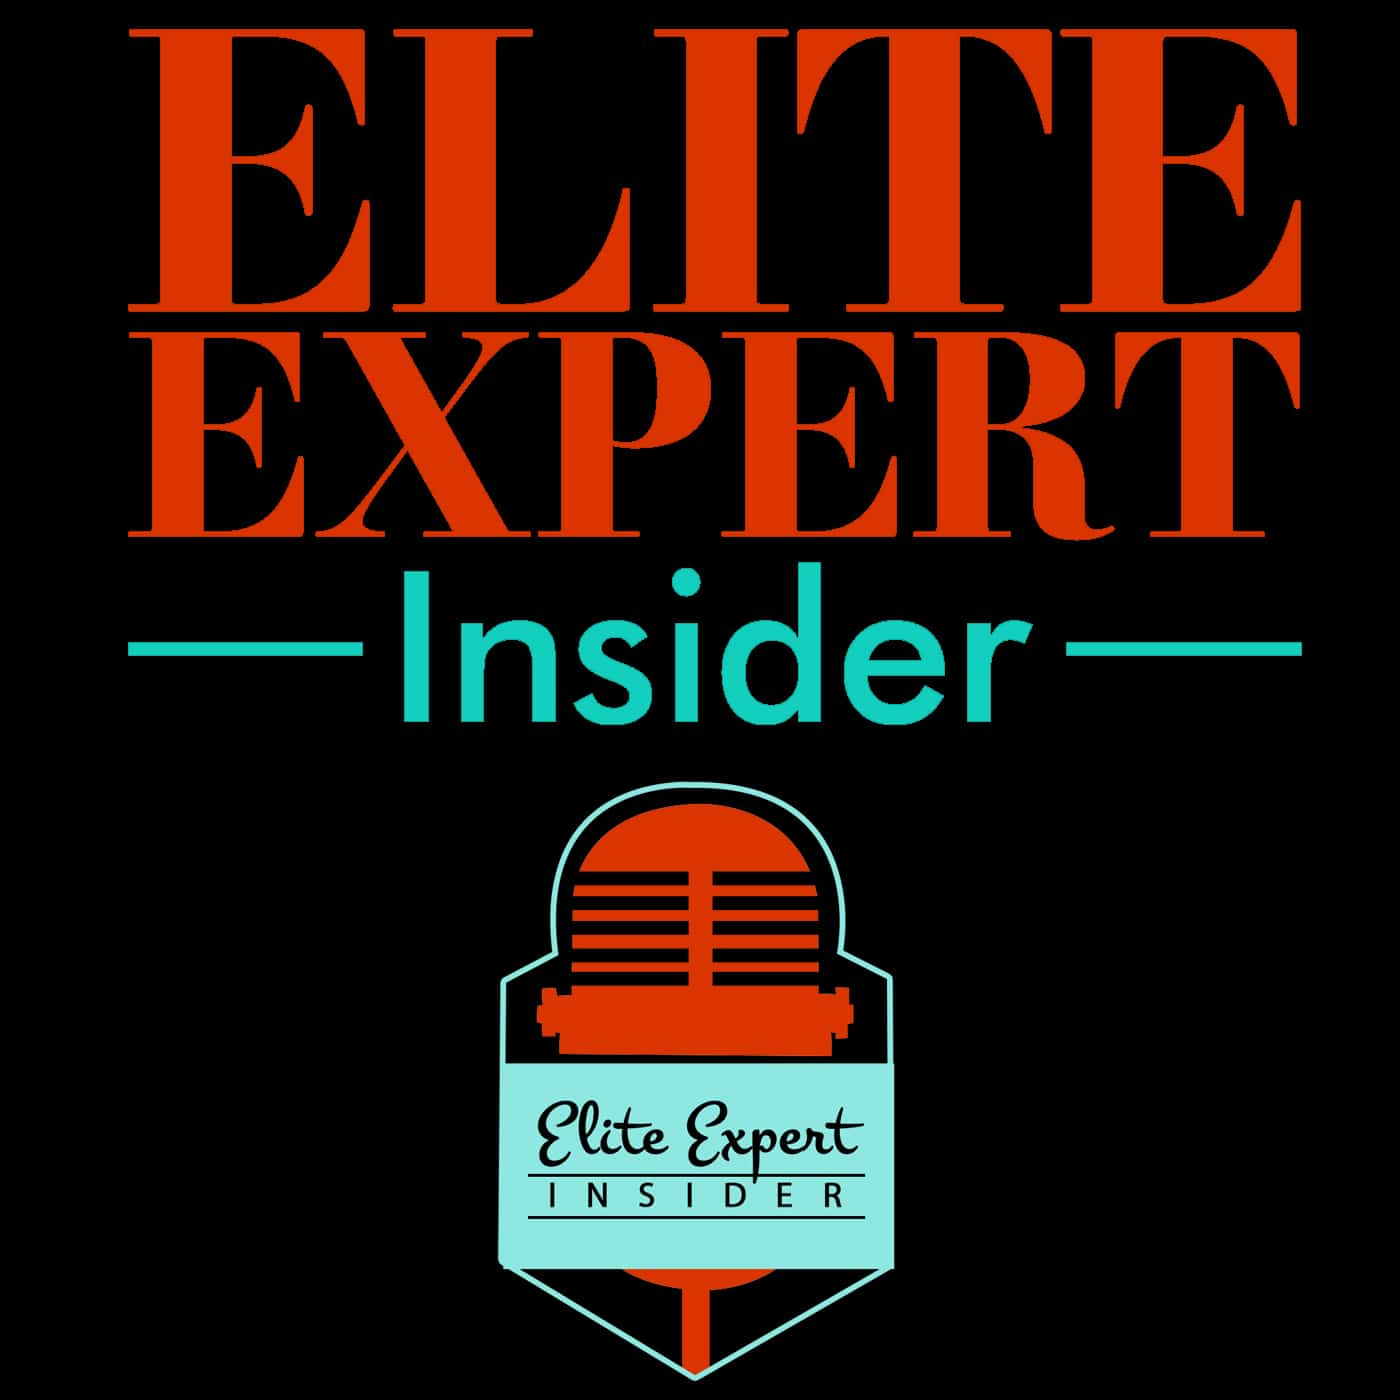 The Elite Expert Insider podcast has arrived